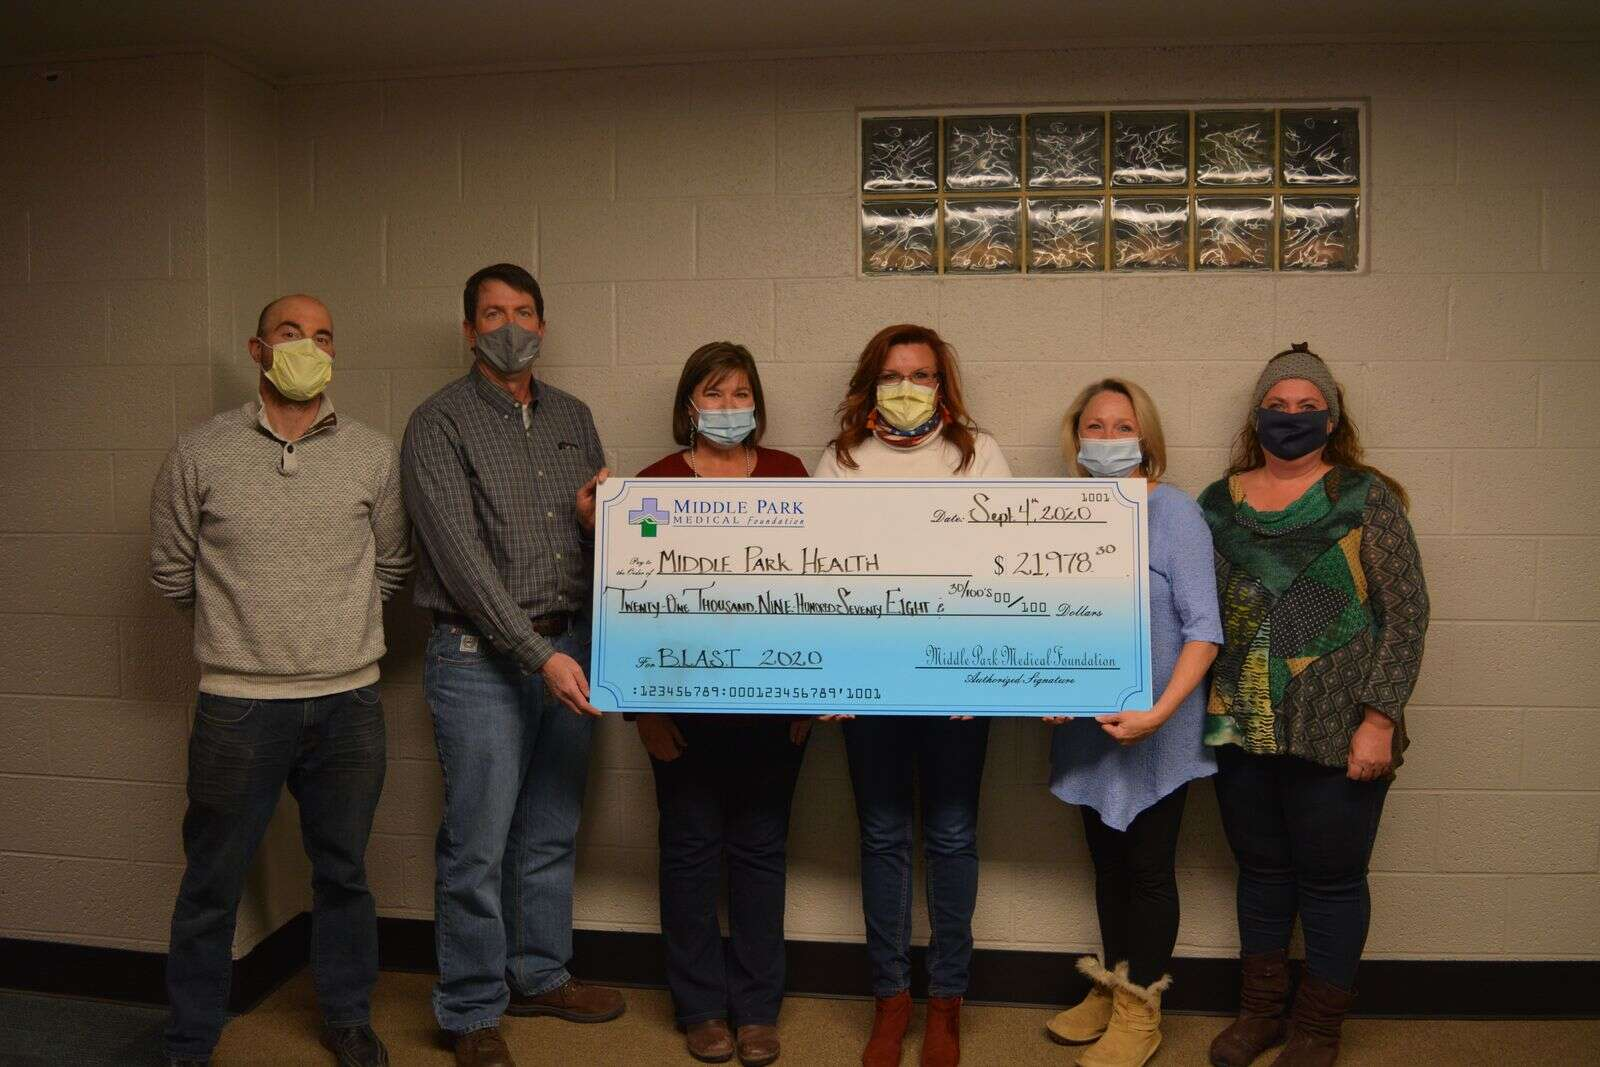 Middle Park Medical Foundation's board members (from left) Andy Radzavich, Frank Delay, Chris Murphy, Jodi Docheff, Kelly Johnson, Kim Cameron accept the BLAST fundraising check.